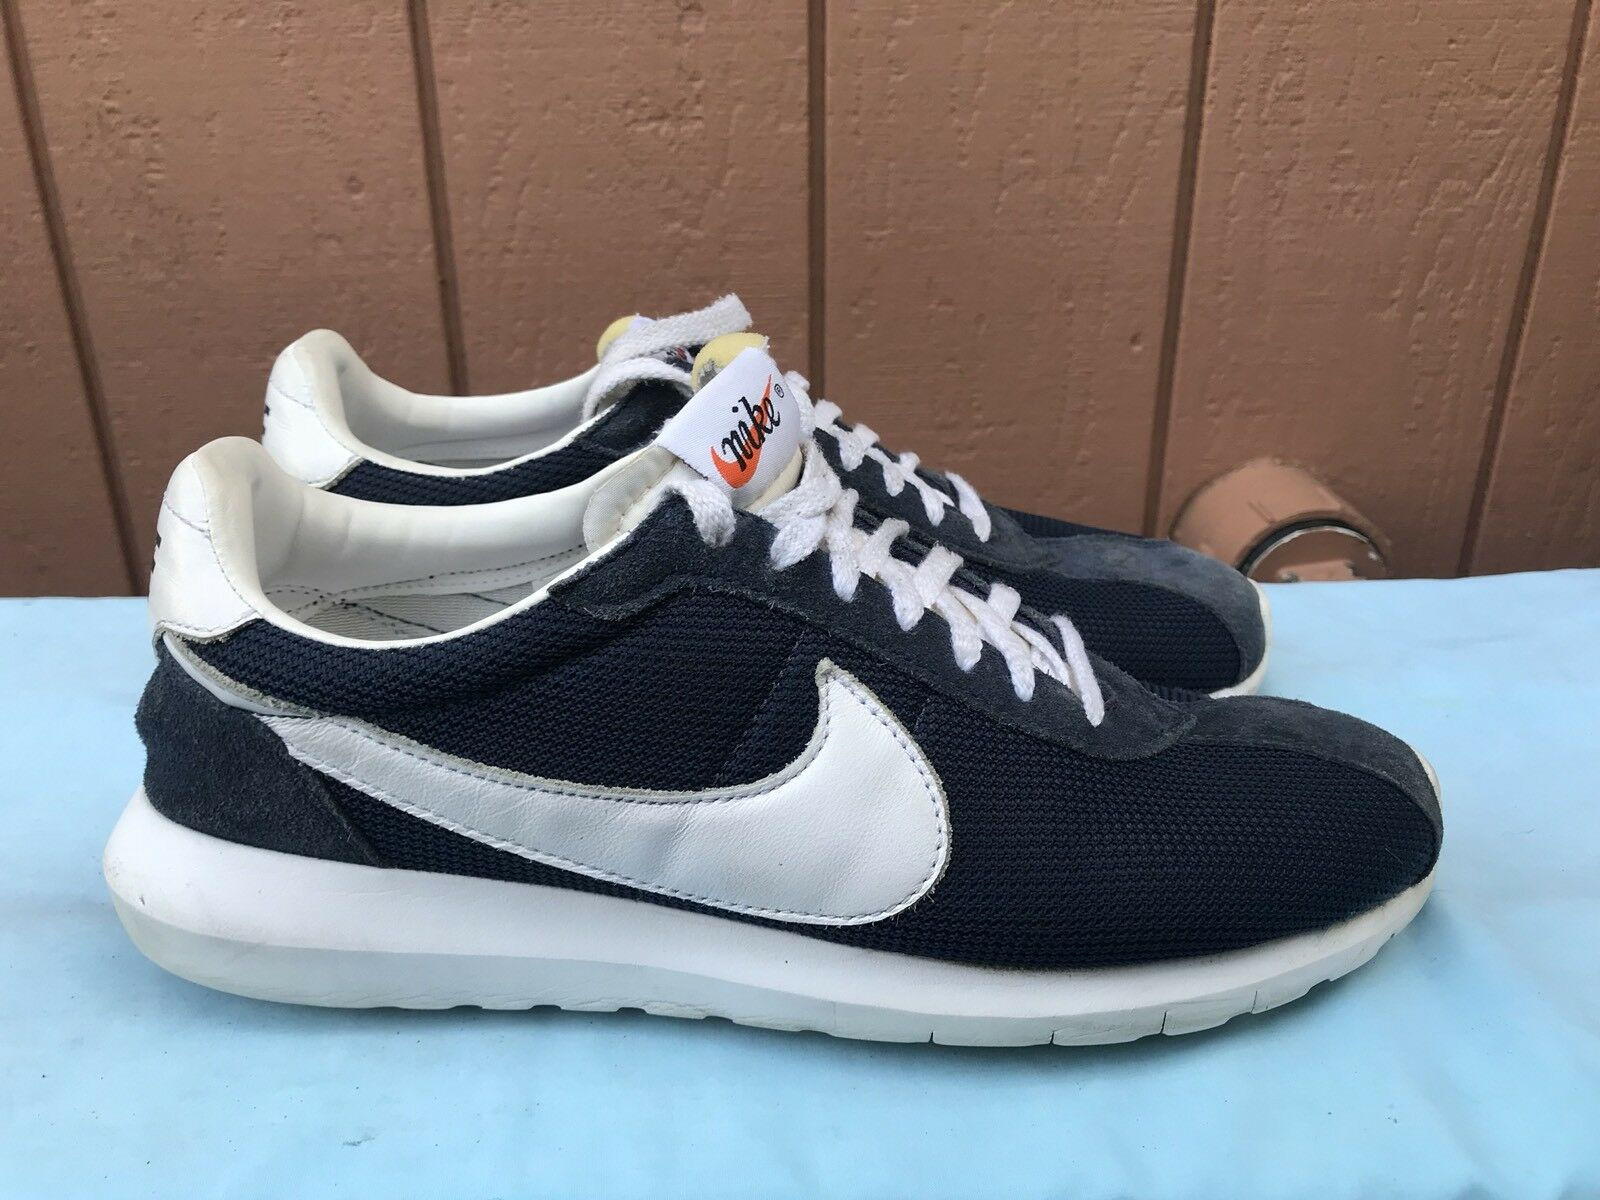 finest selection f6f71 f4b70 NIKE ROSHE LD 1000 1000 1000 QS SNEAKERS OBSIDIAN WHITE MEN S US 11 802022  401 CORTEZ A6 a5b3ed